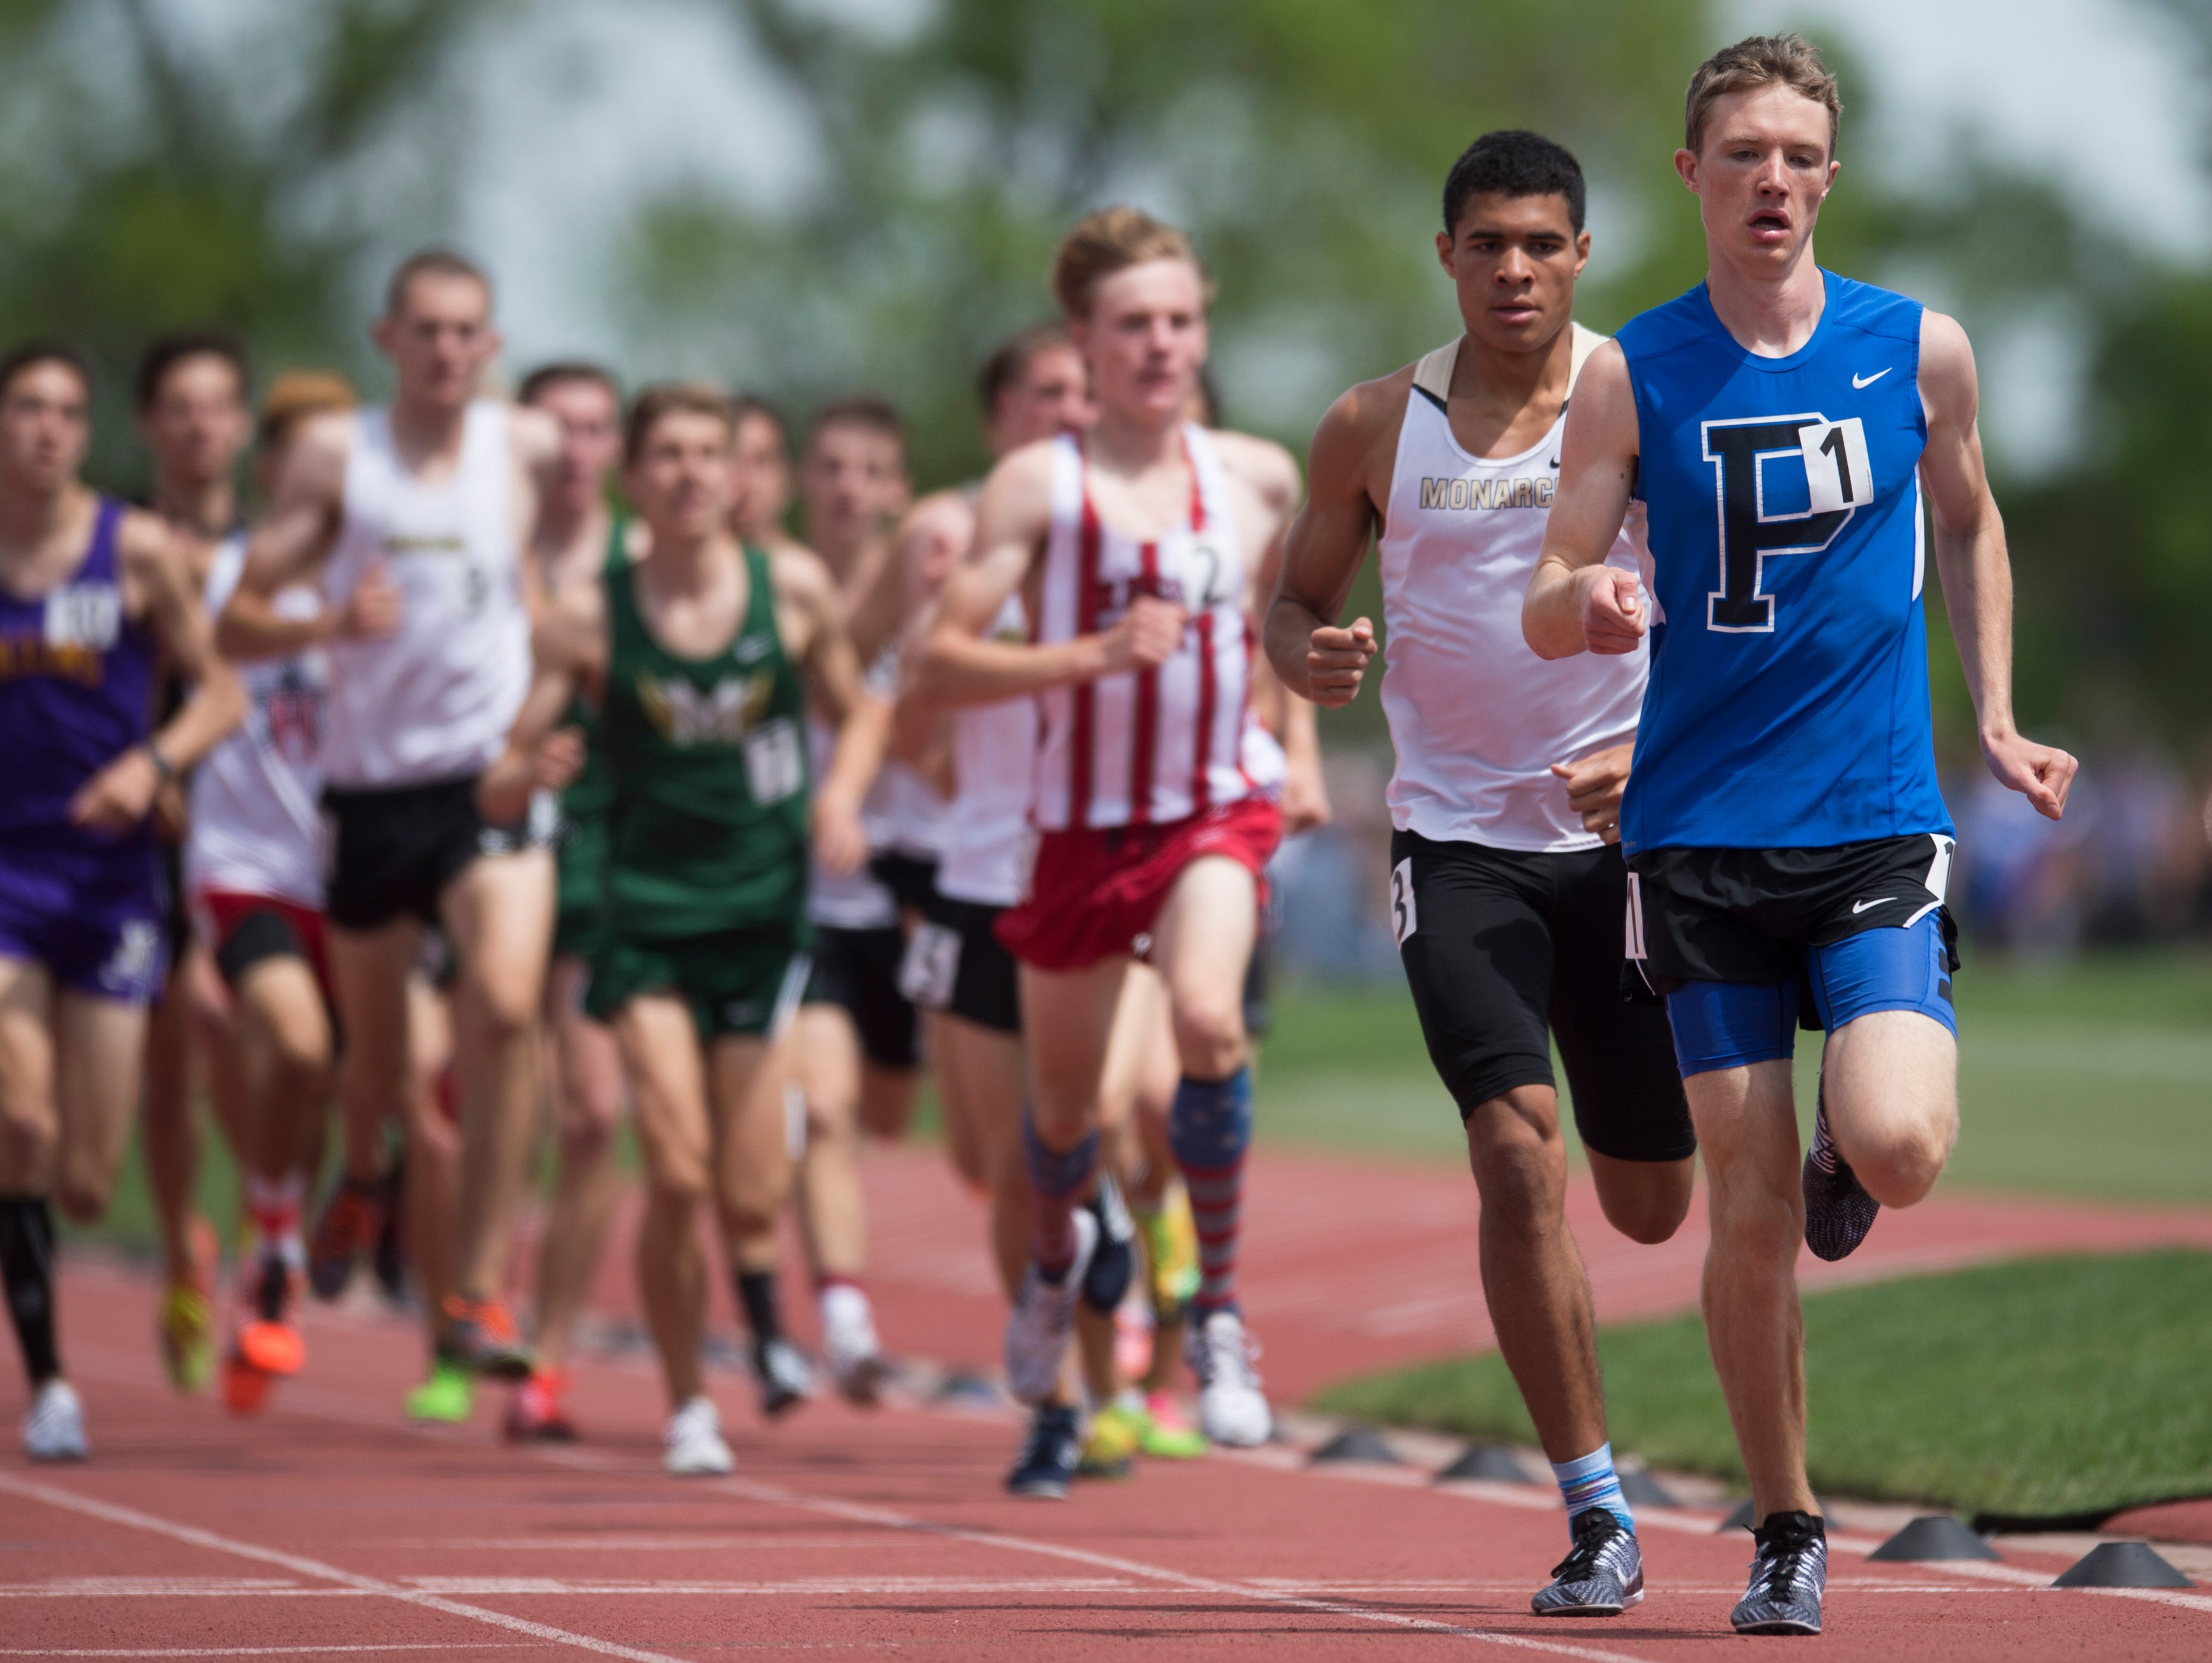 Poudre High School's Henry Raymond sets the pace in the boys Class 5A 1,600 meters Saturday while claiming his third state title in as many days at the Colorado state track and field championships at Jeffco Stadium in Lakewood.